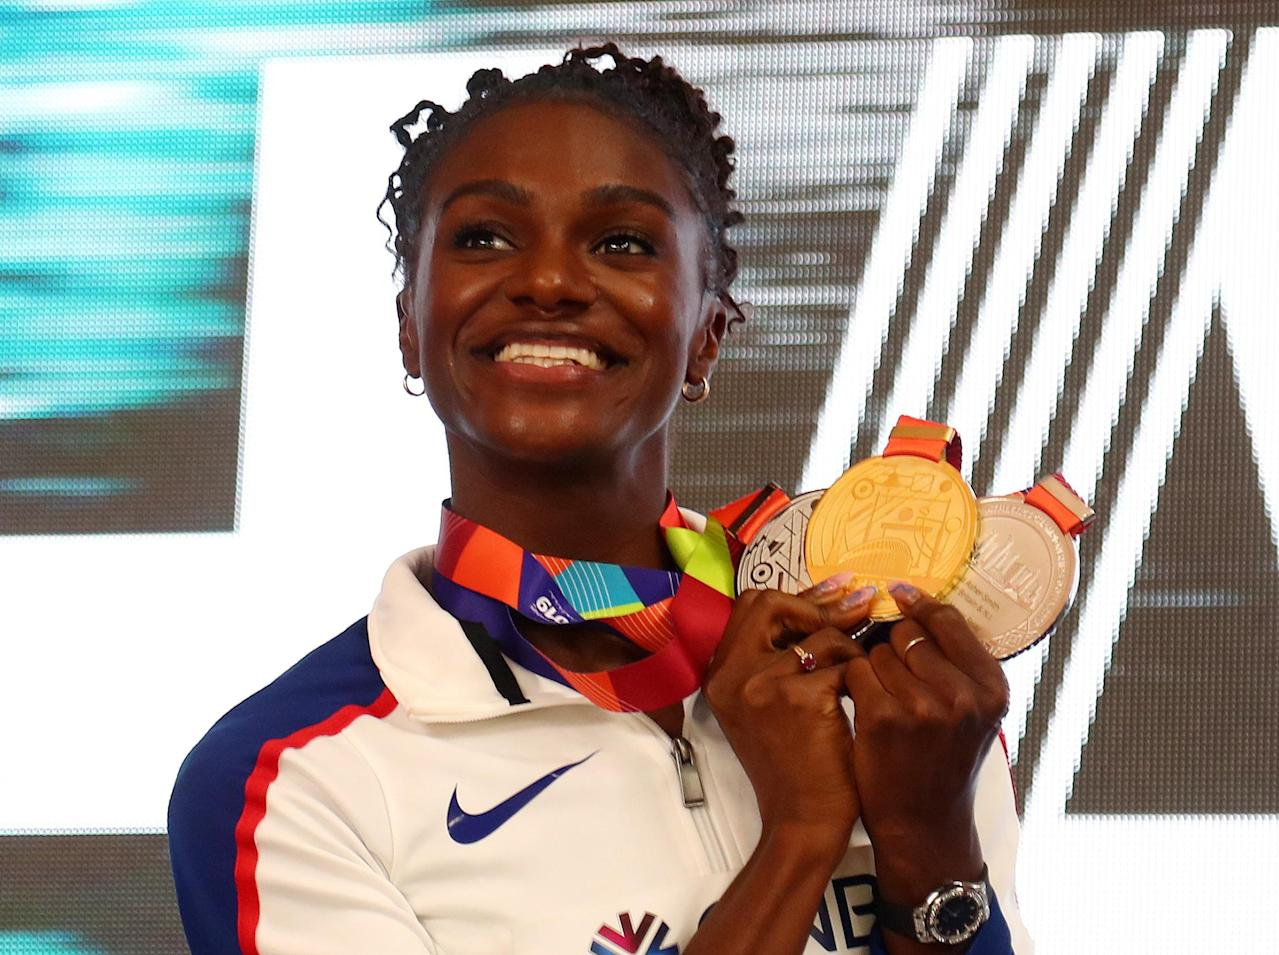 Blackie: Normality the key for sprint queen Asher-Smith in Tokyo quest